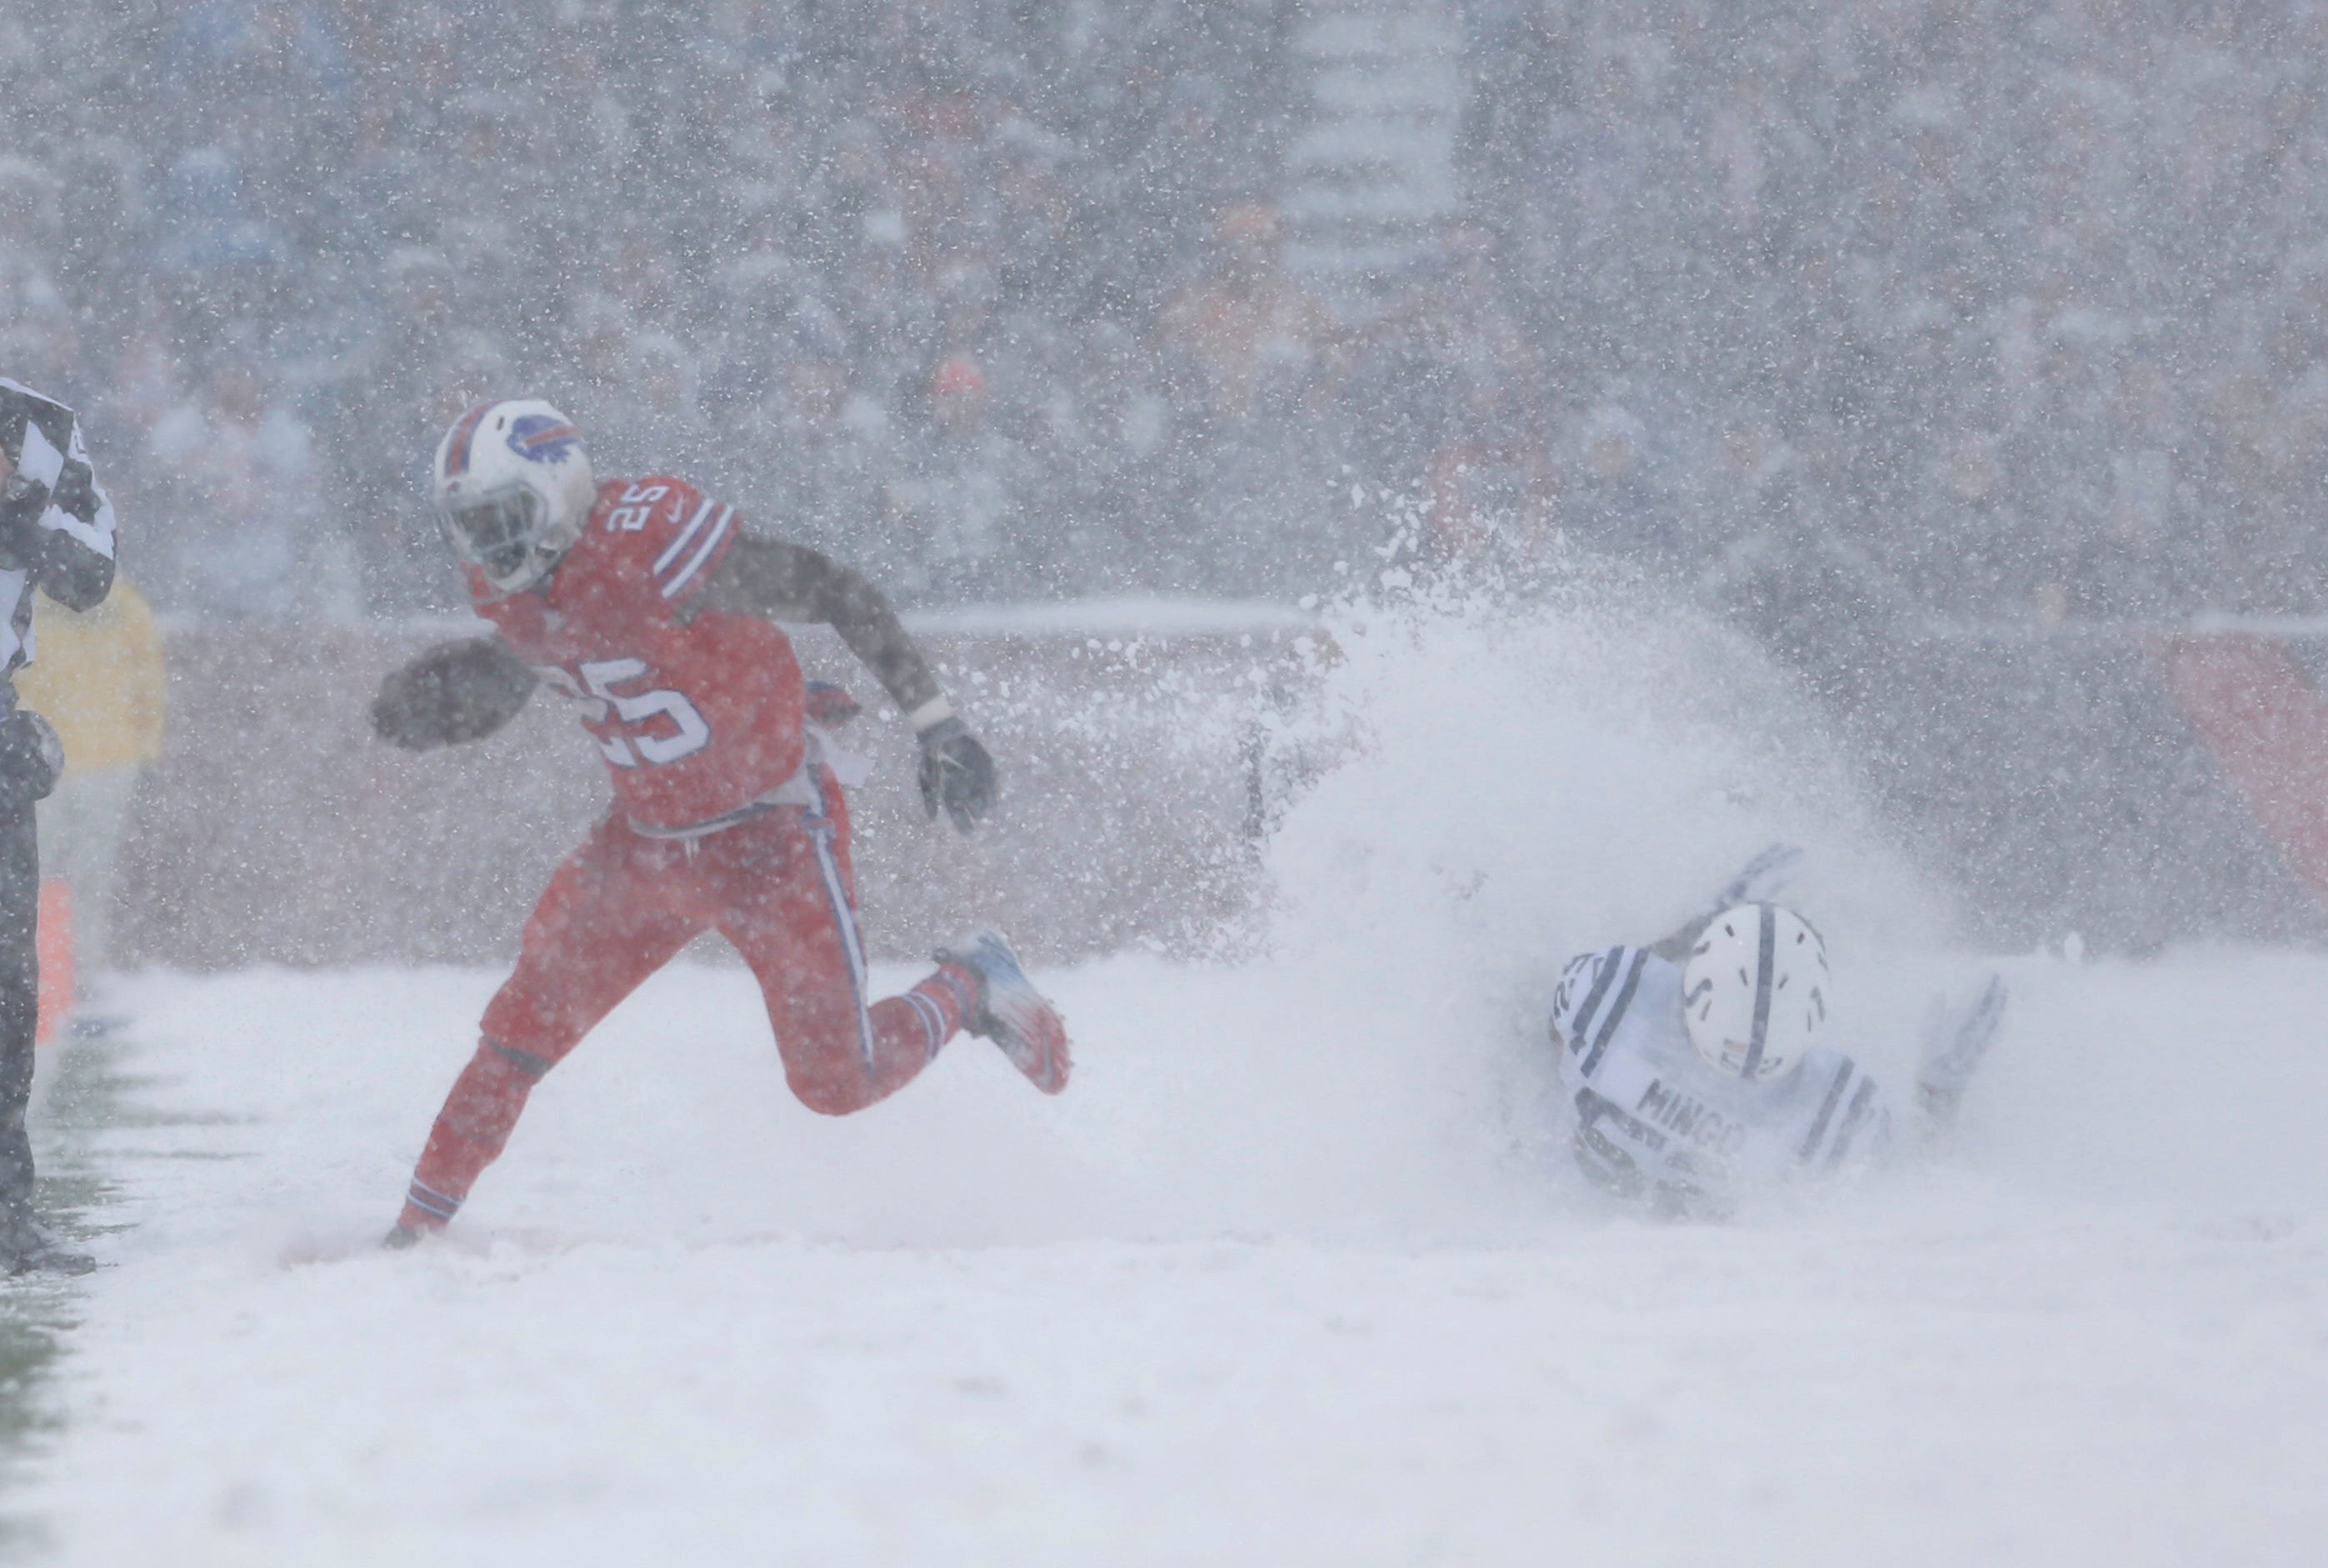 Dec. 10, 2017: Buffalo Bills running back LeSean McCoy runs past Indianapolis Colts outside linebacker Barkevious Mingo in a snow storm at New Era Field. The Bills won in overtime, 13-7.